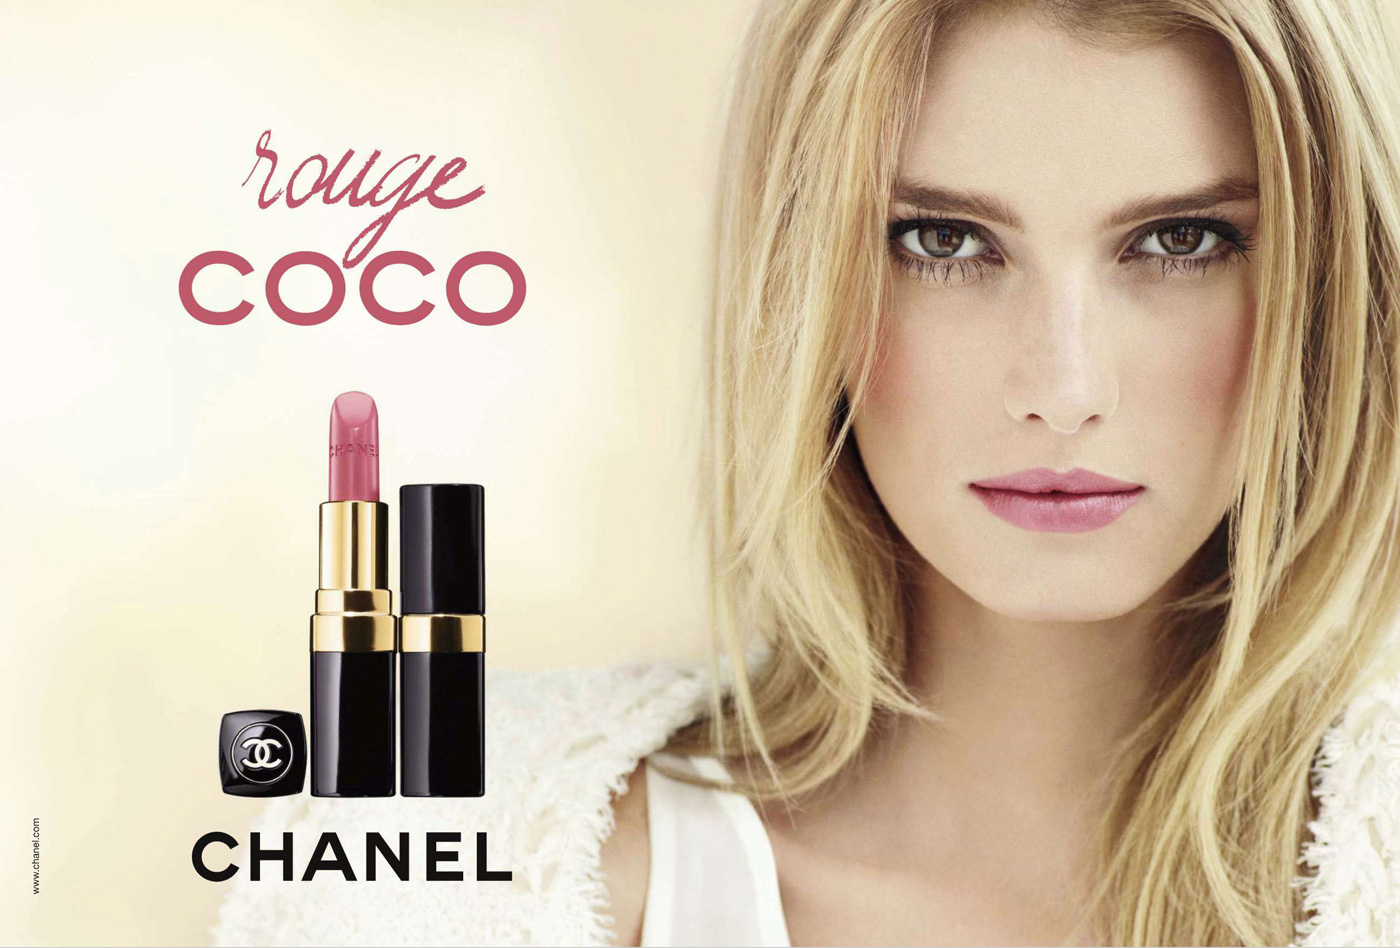 Sigrid Rouge Coco Chanel